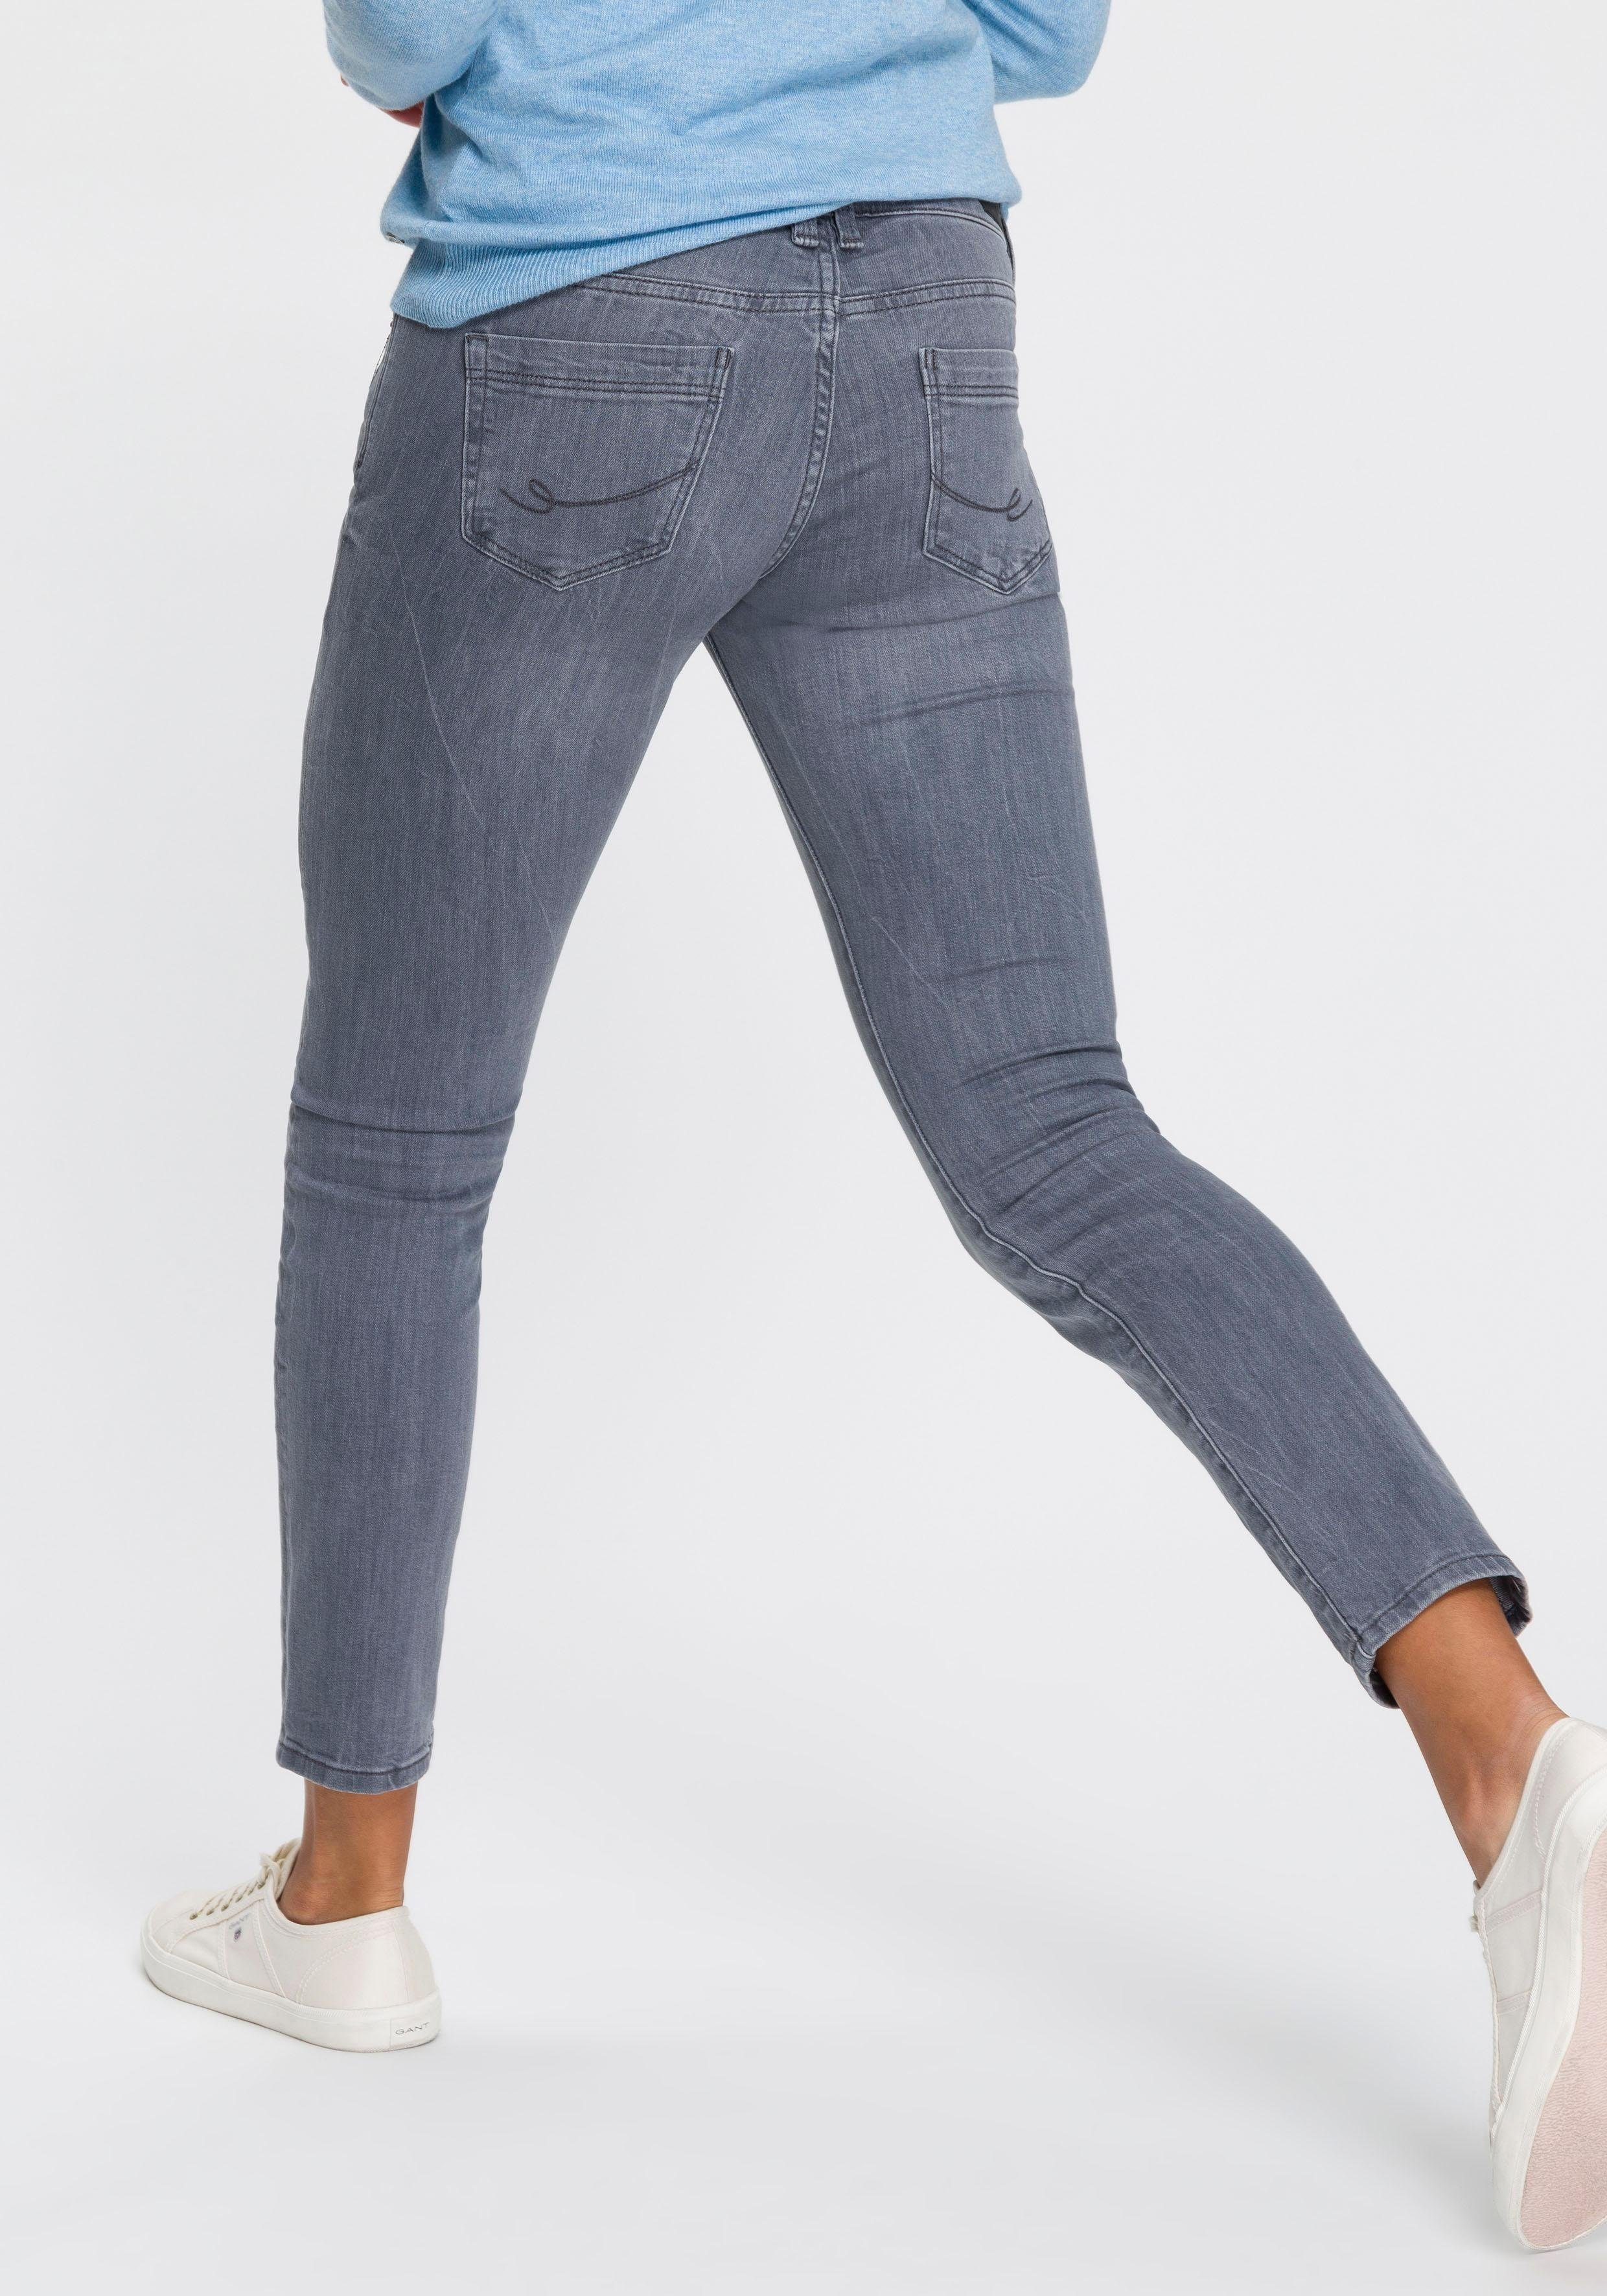 edc by Esprit 5-Pocket-Jeans in cooler Waschung